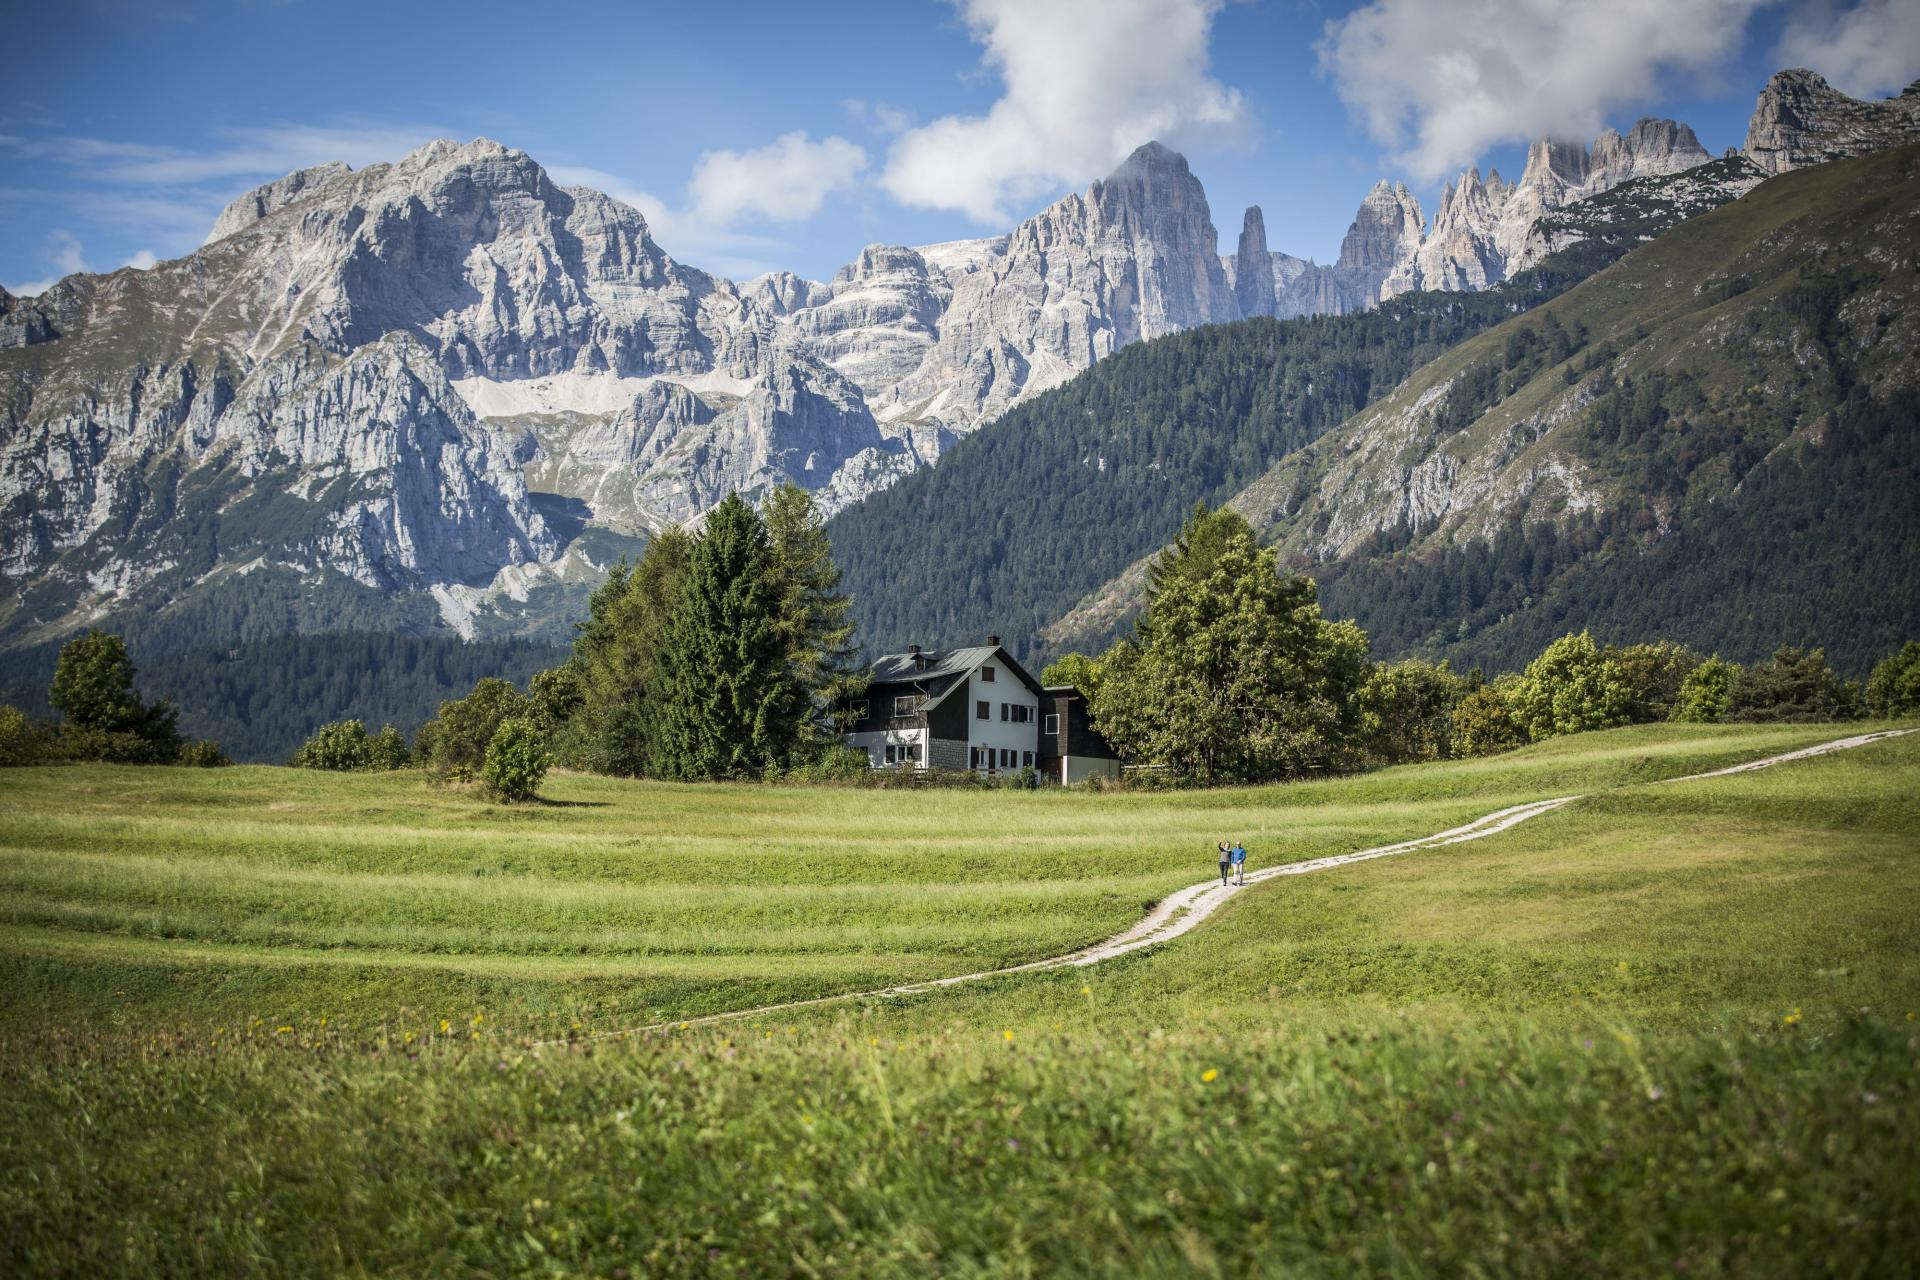 5 DAYS OF ITALY - DOLOMITI PAGANELLA